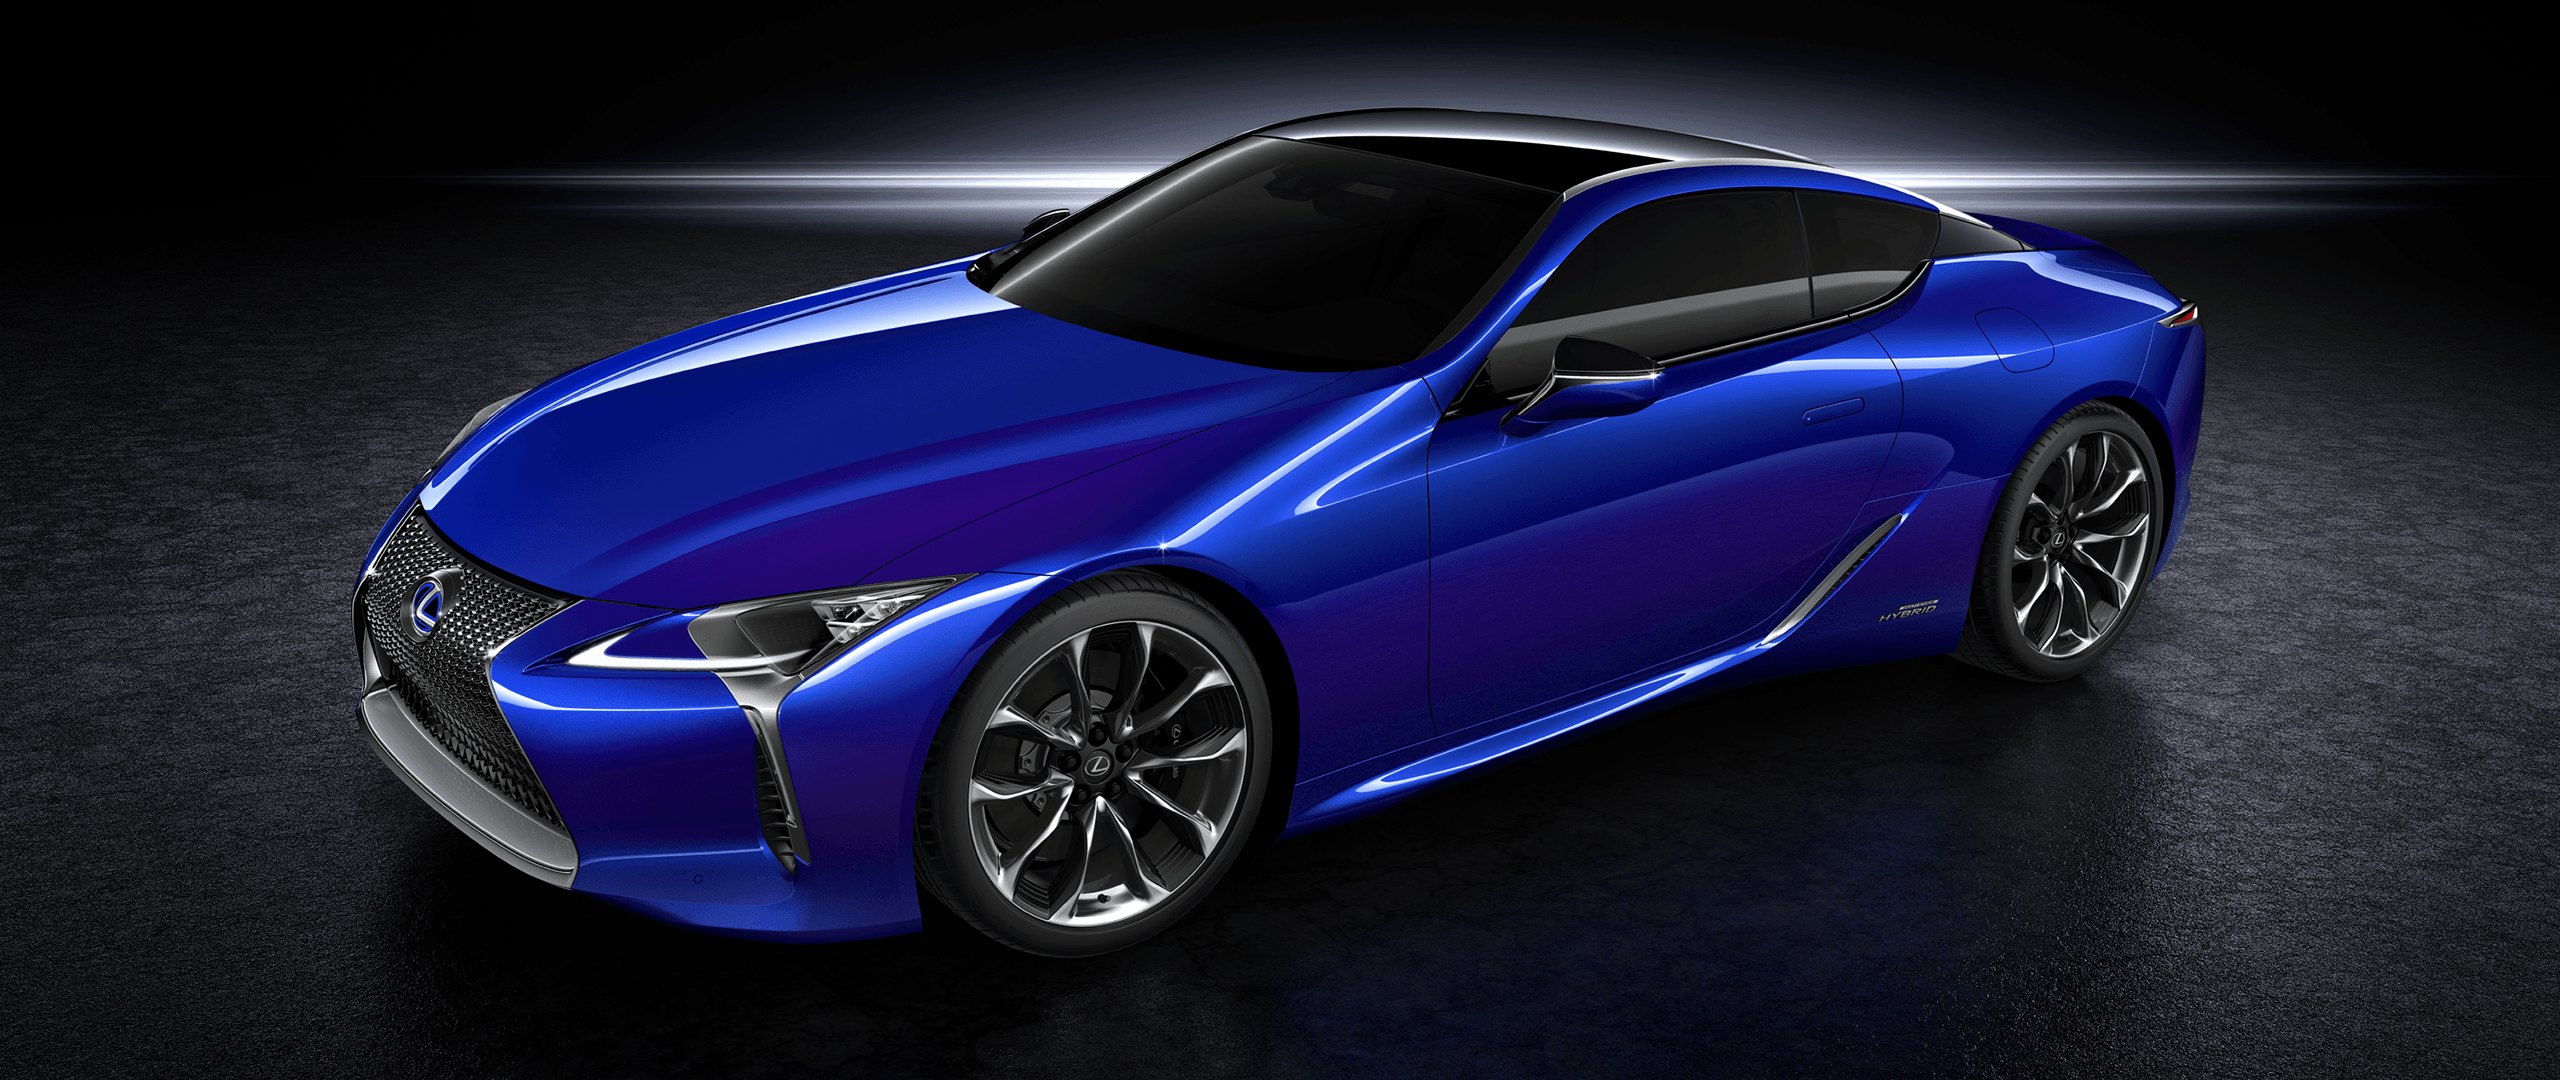 Lexus LC 500, Car, Vehicle, Hybrid, Electric Car Wallpapers HD